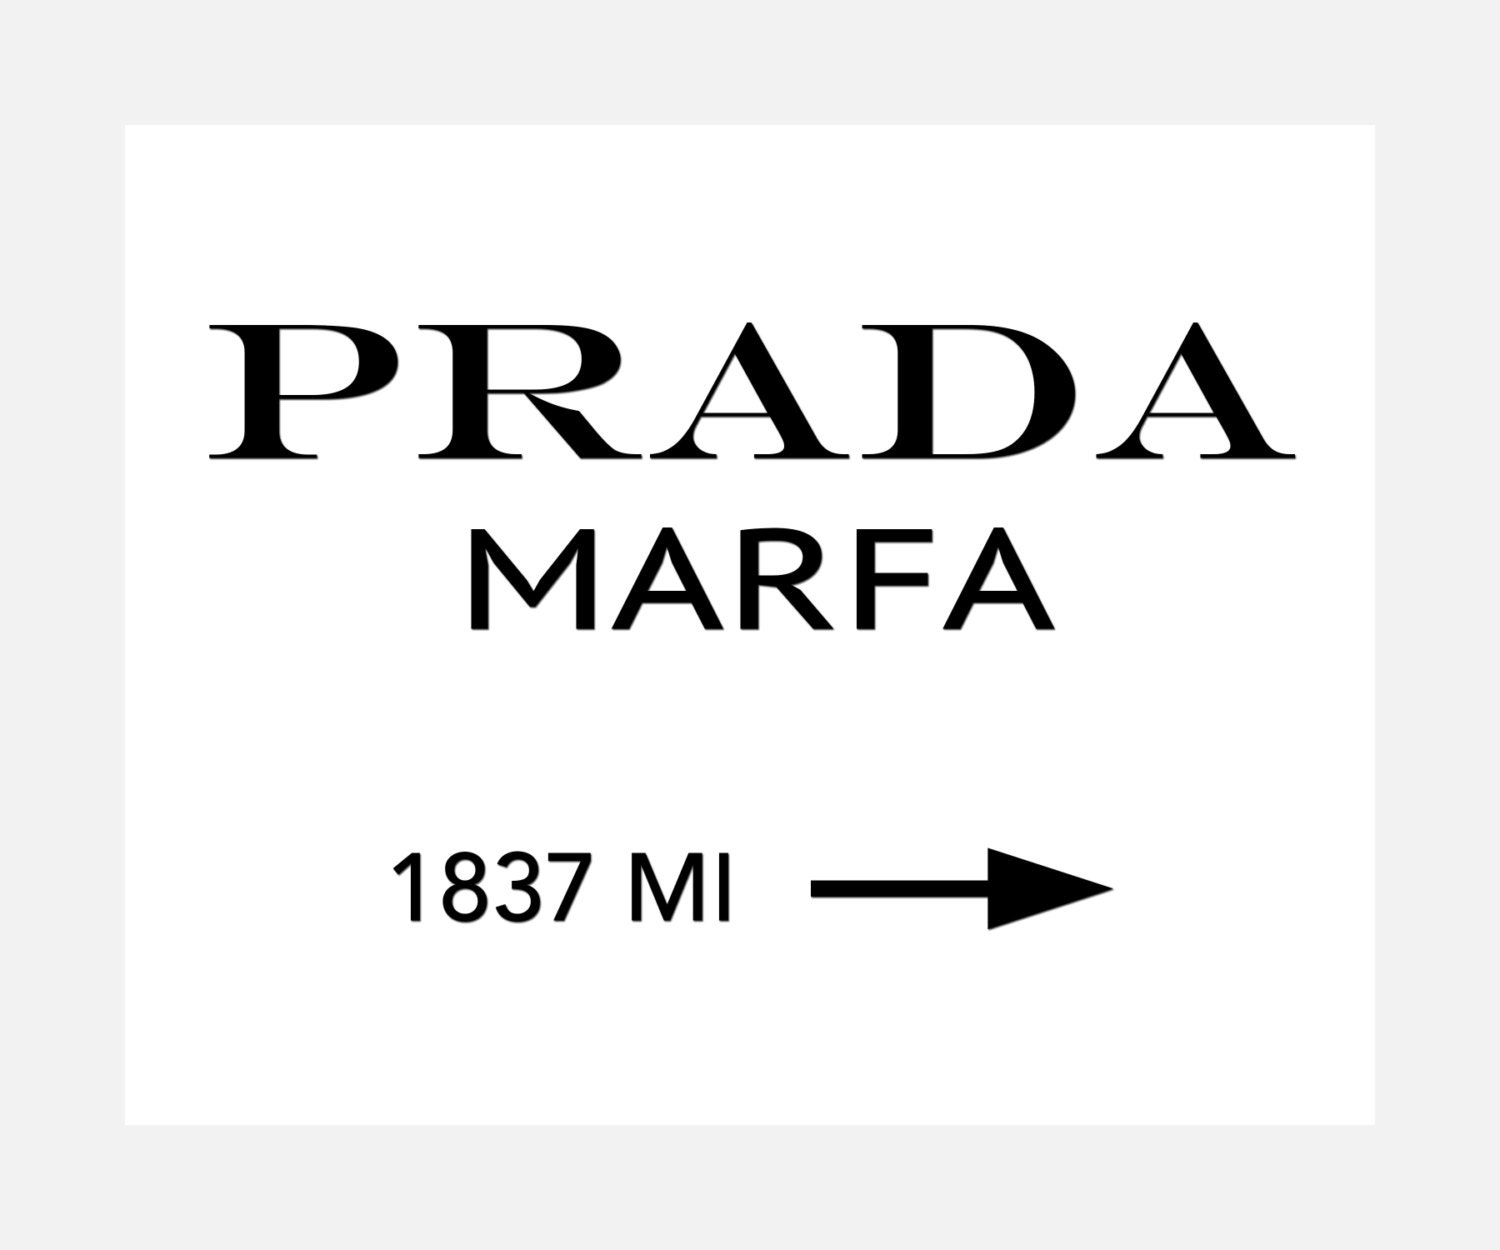 prada marfa ready to hang canvas wrap or luster by posterspeak. Black Bedroom Furniture Sets. Home Design Ideas